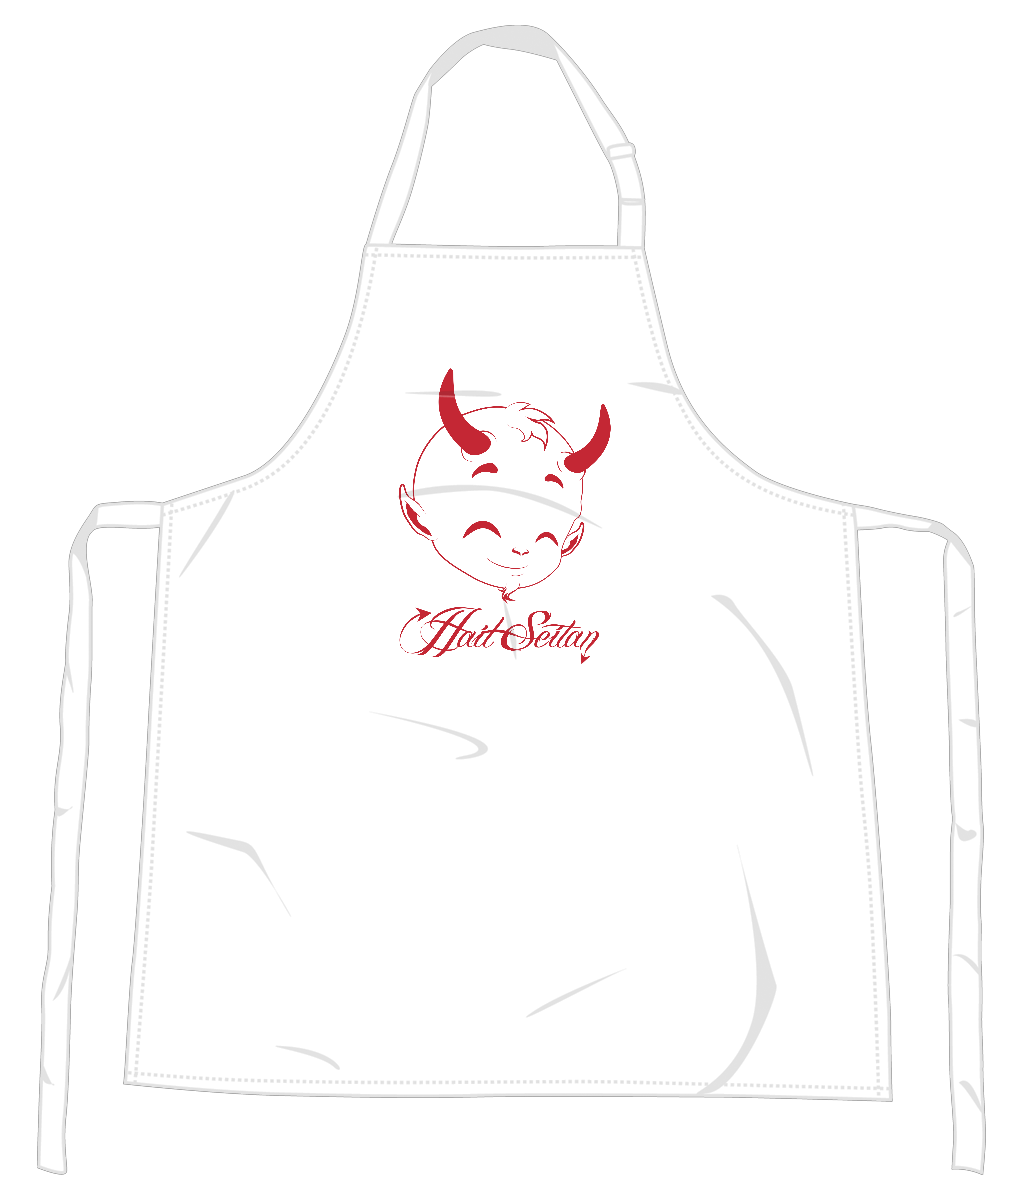 Hail Seitan Vegan Apron 0066 - Accessories & Homeware - EchoWears T-Shirts & Accessories